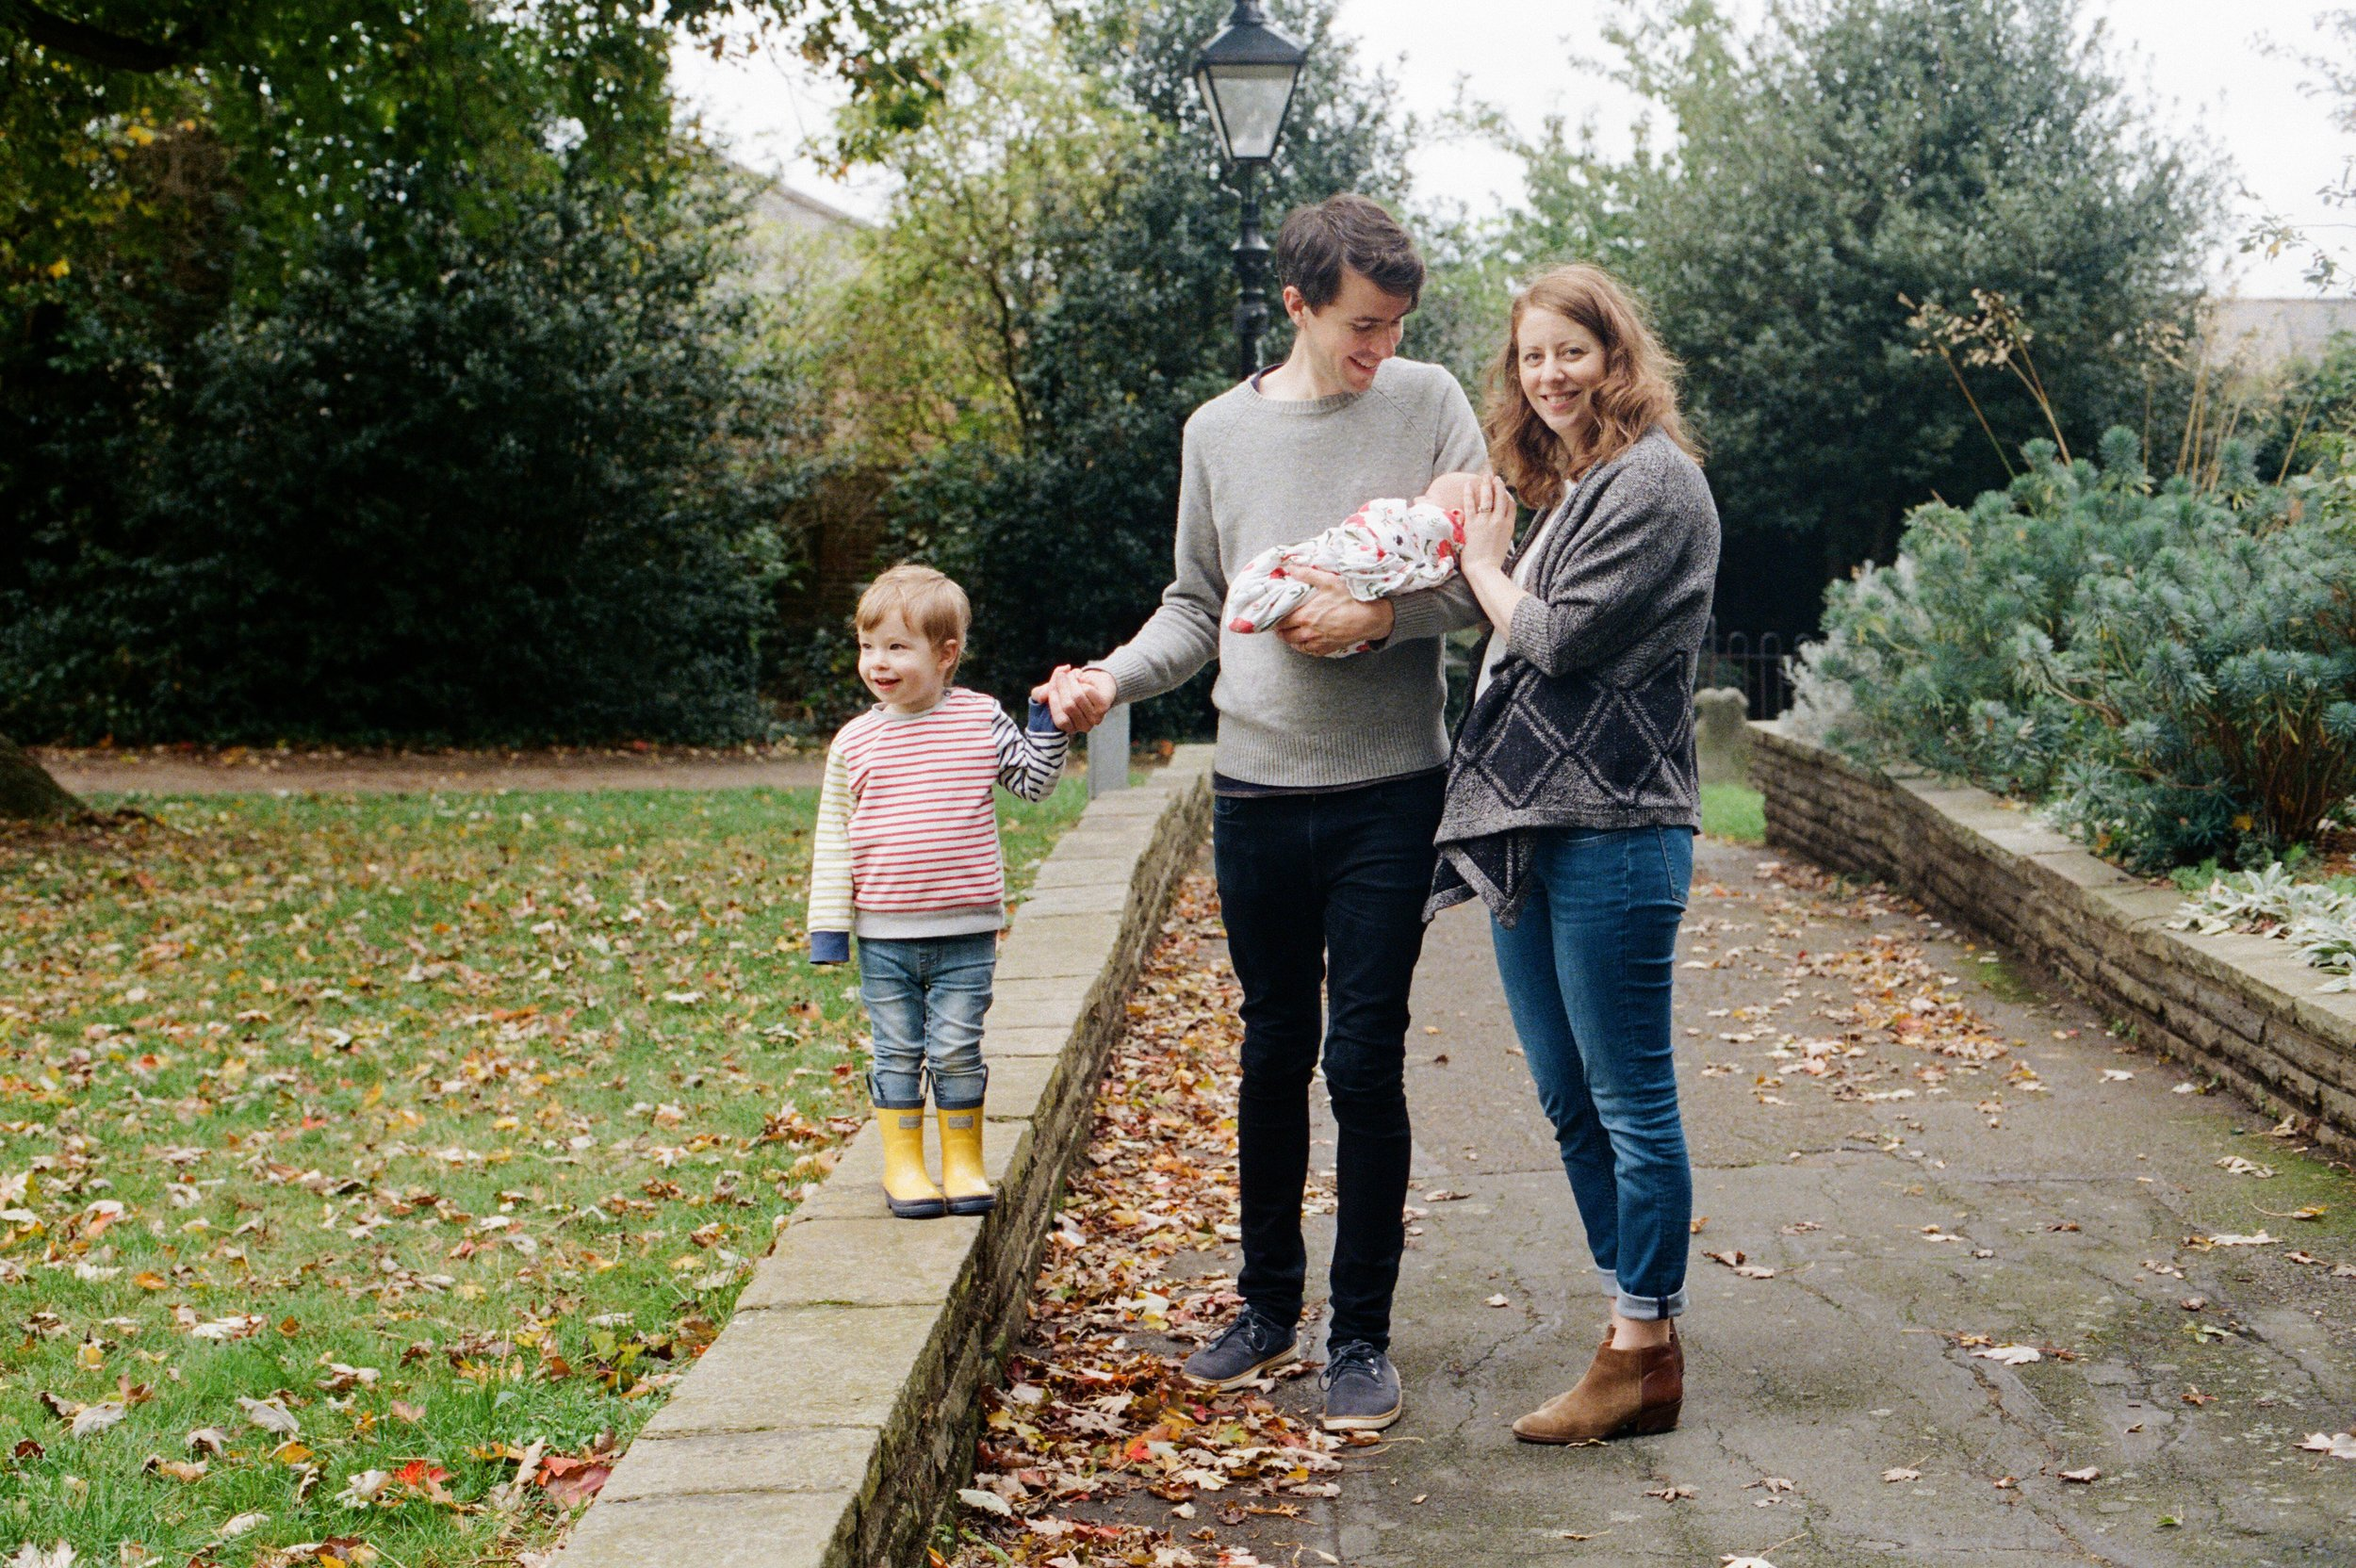 london_family_photographer_3.jpg